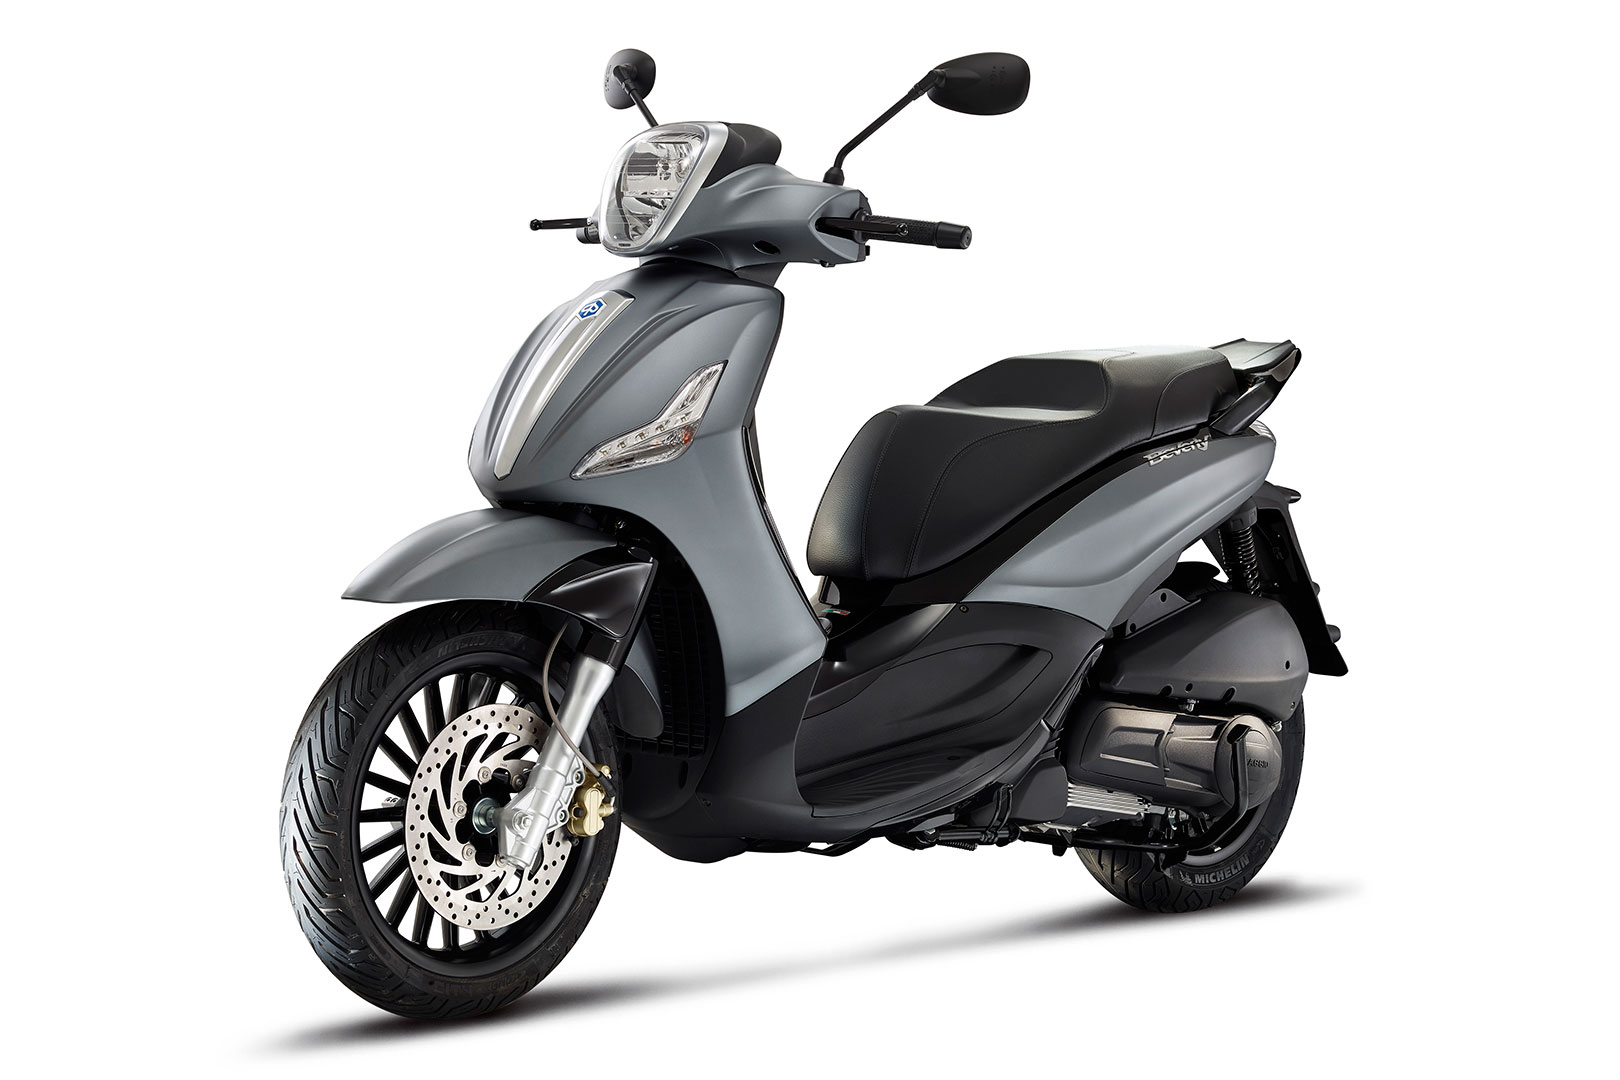 Achat Piaggio Beverly S ABS-ASR 300 cm3 neuf à Nice chez Scoot Center-2